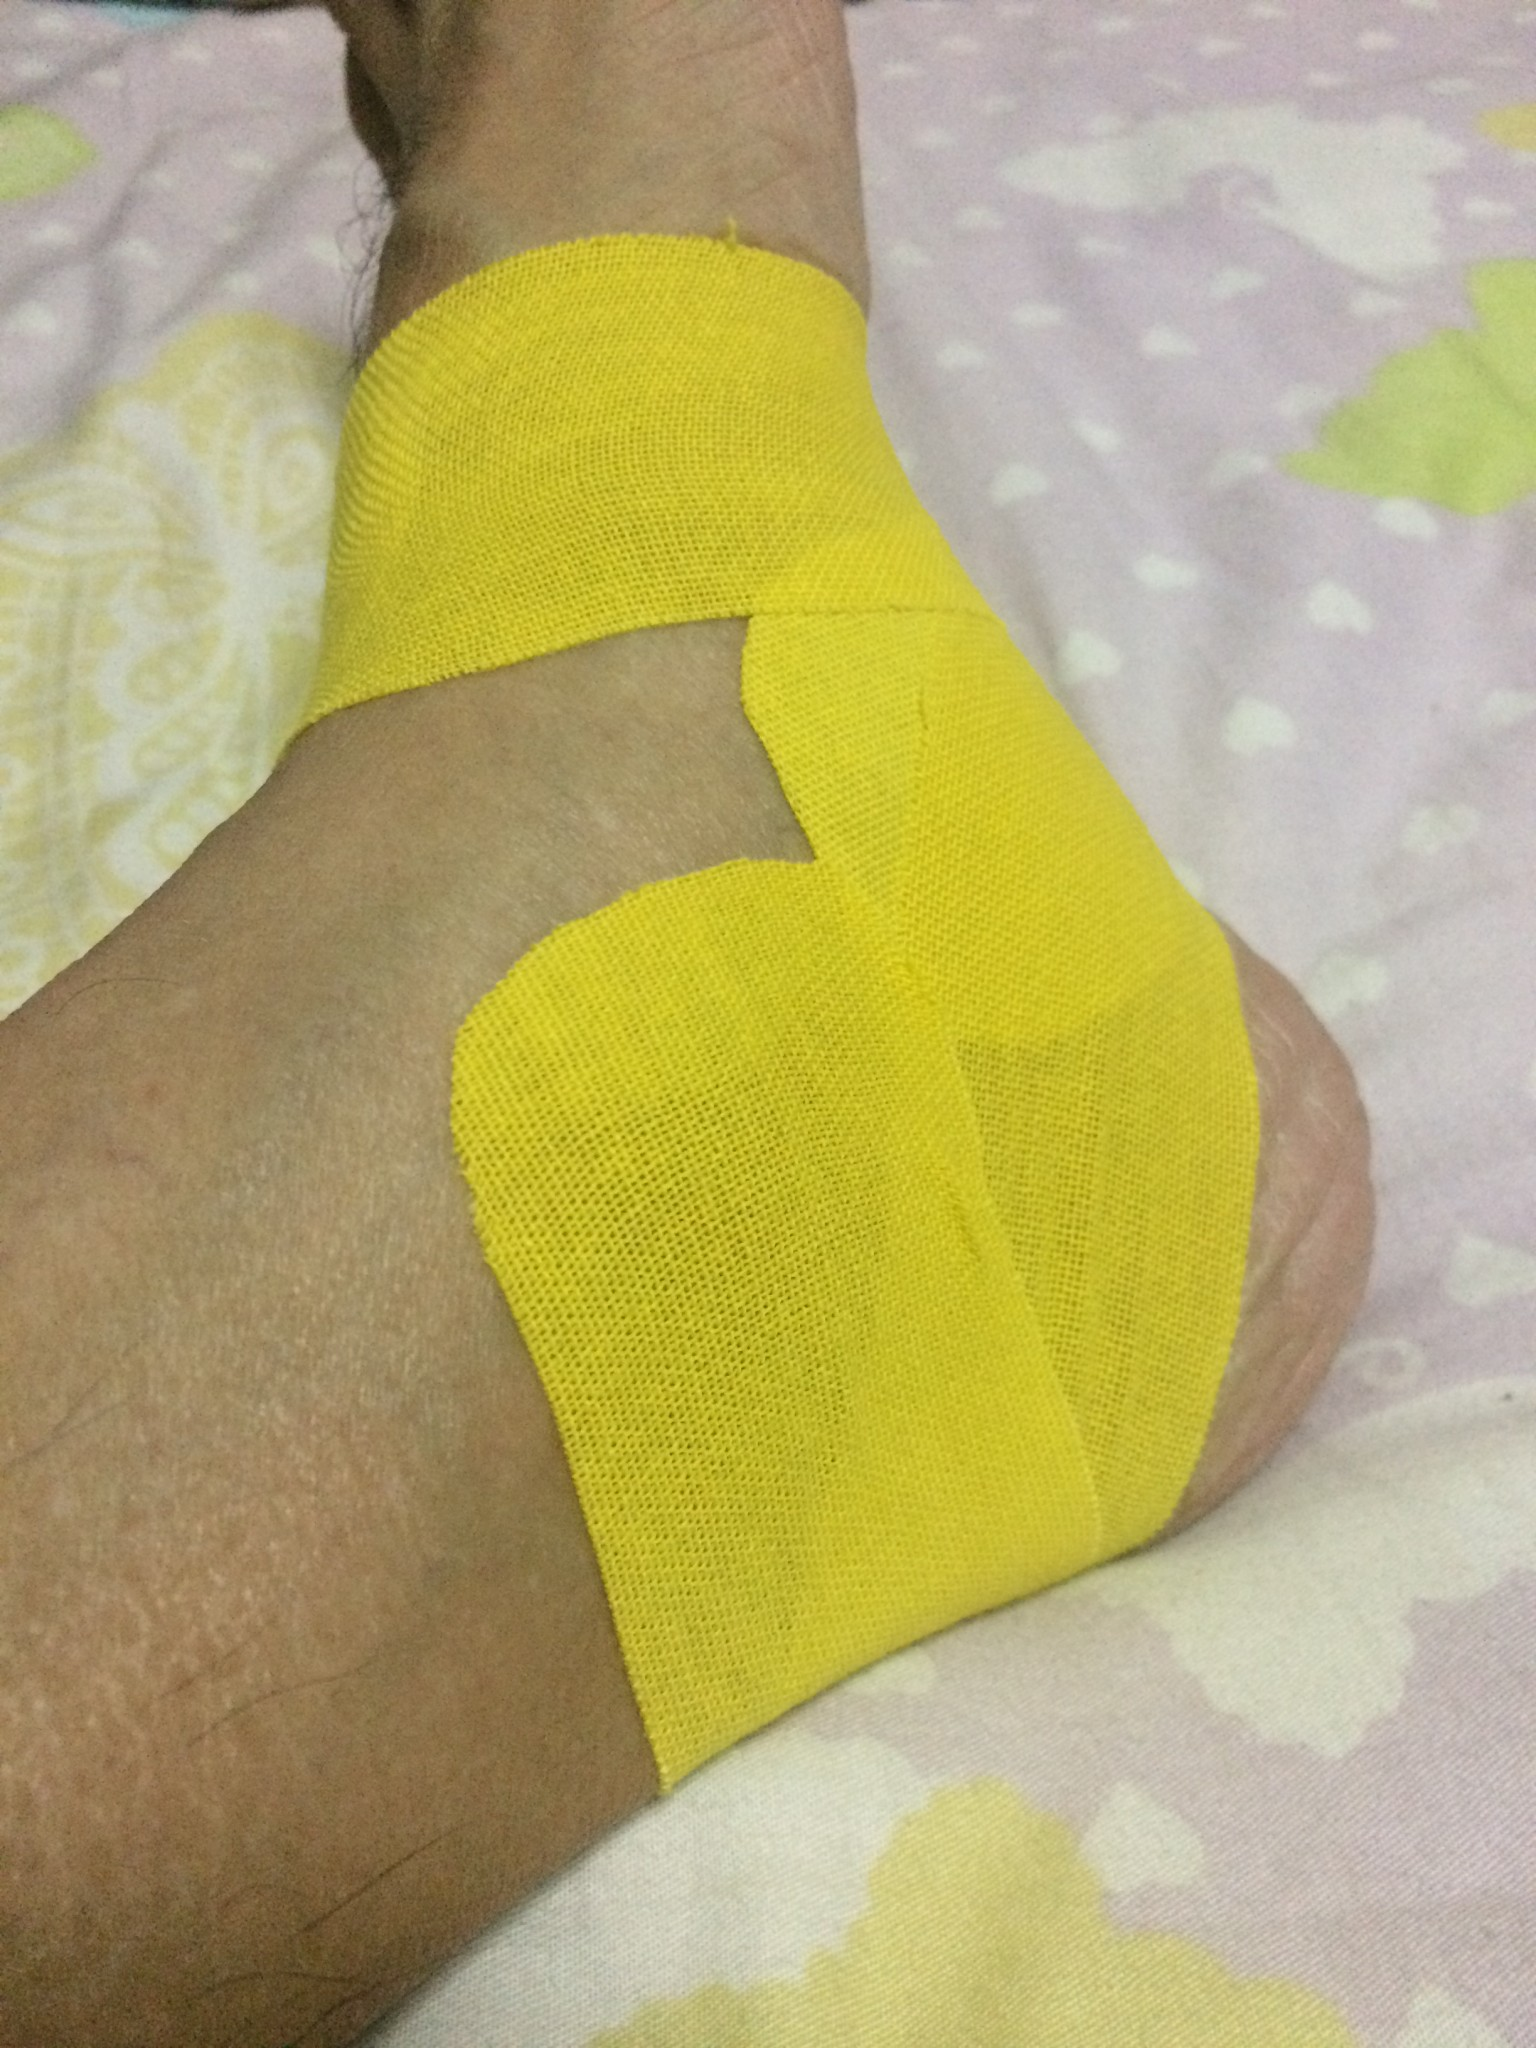 Amateurish taping